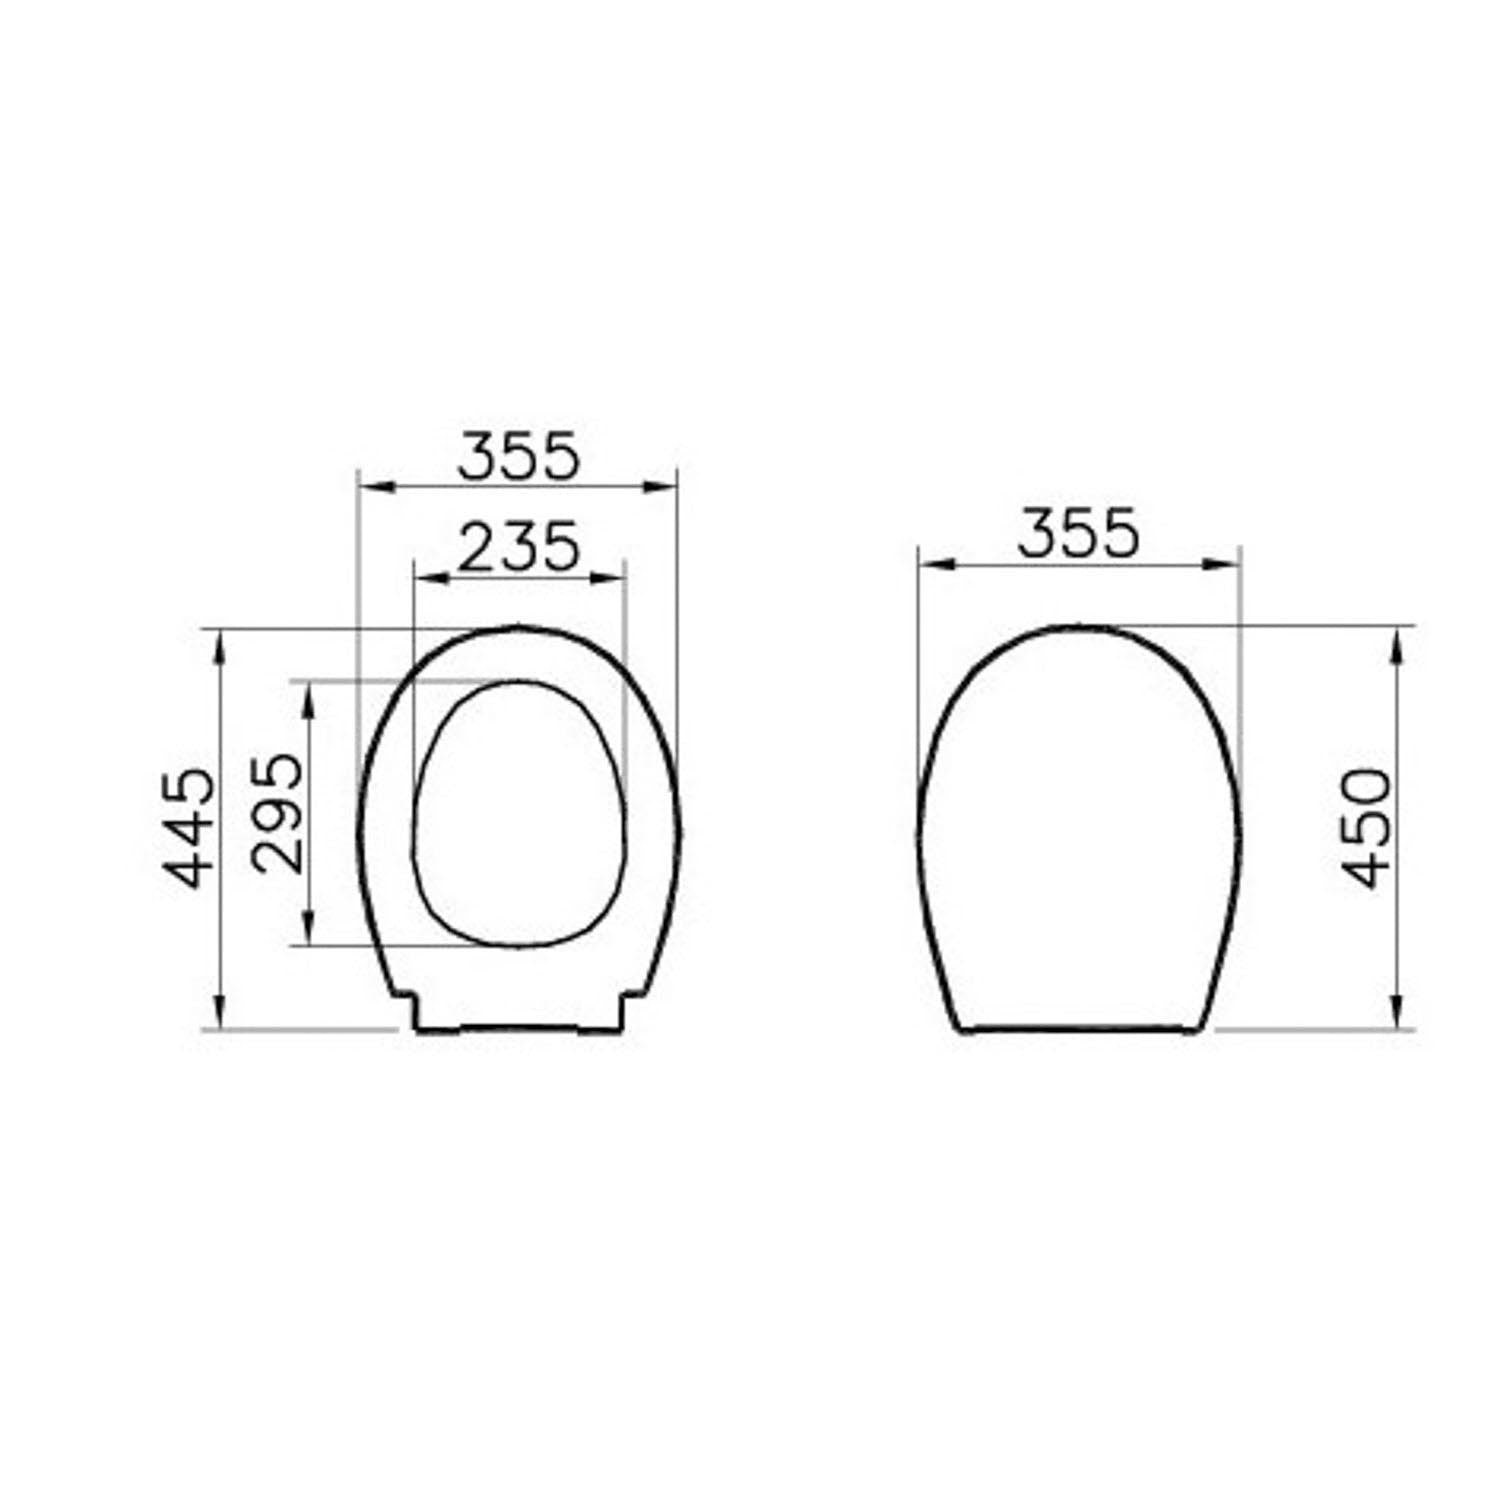 Consilio Toilet Seat and Cover dimensional drawing